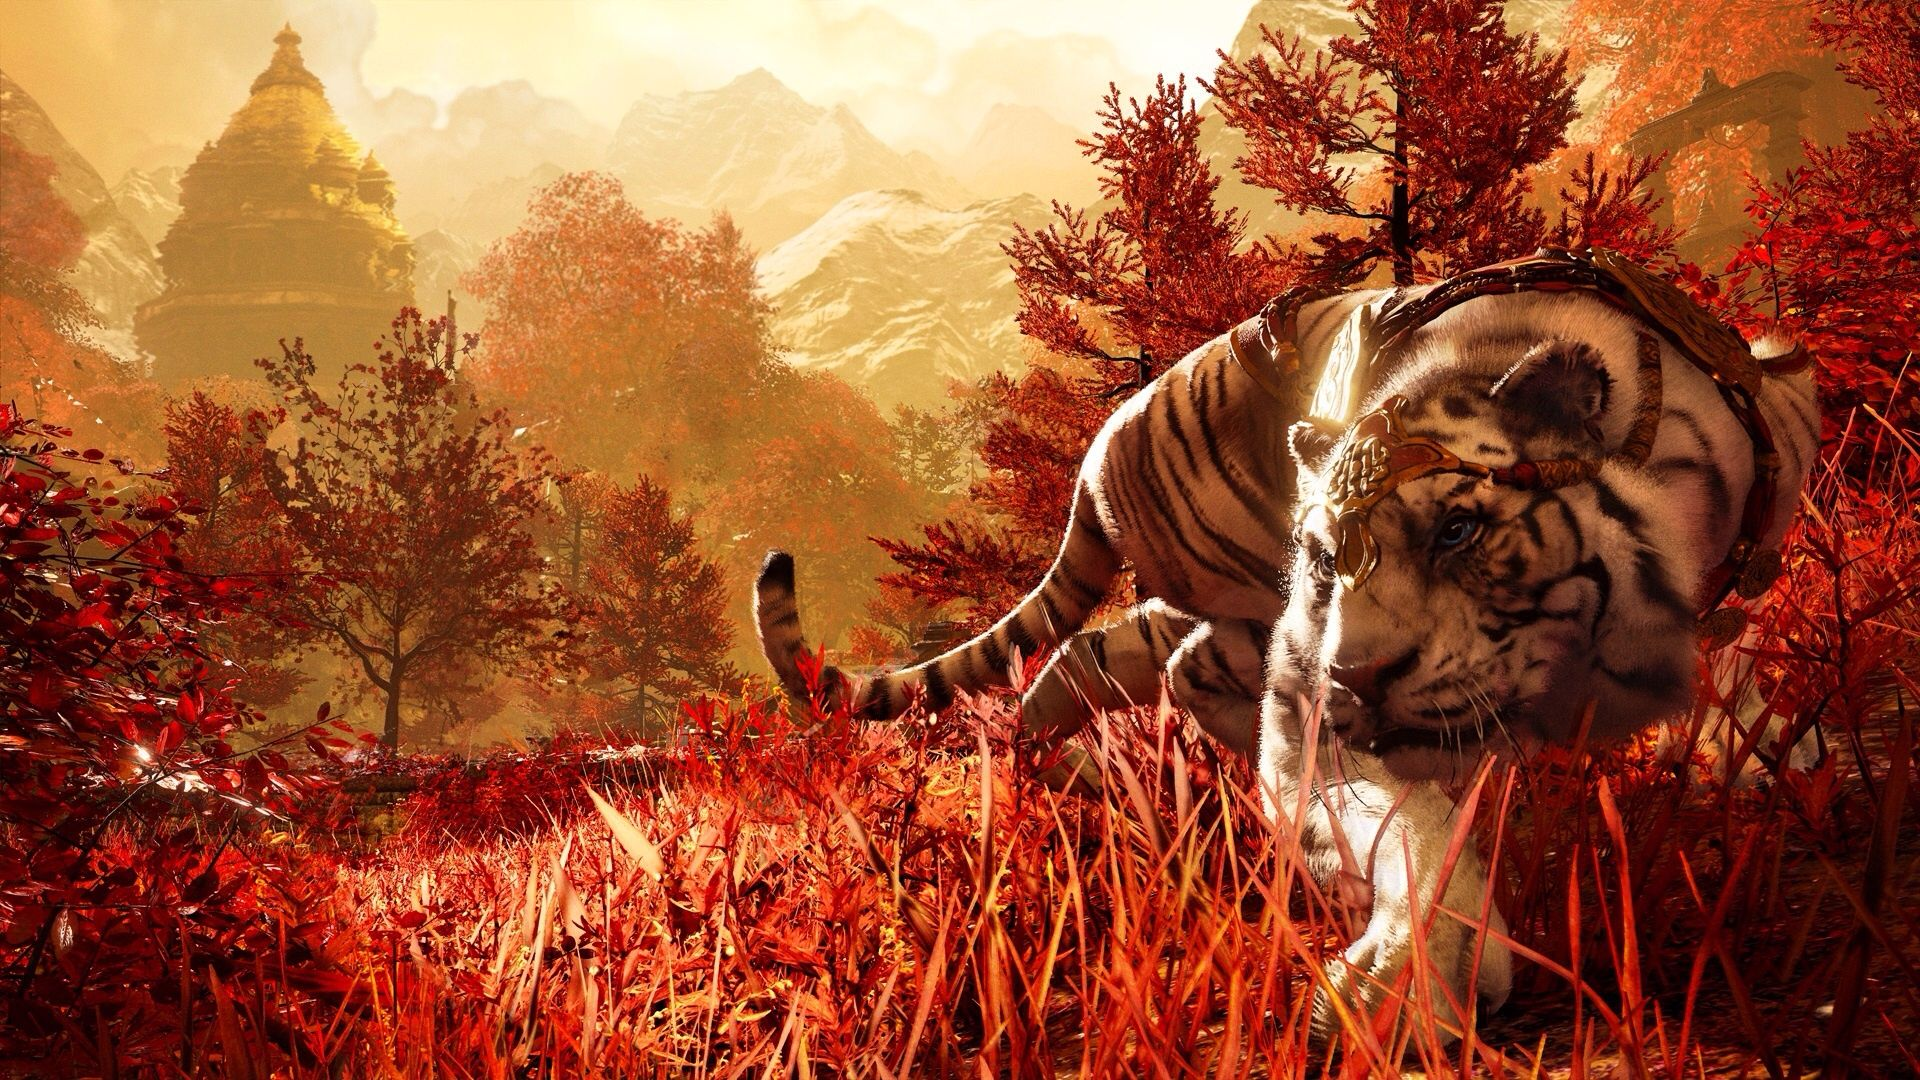 lion from farcry 4 | farcry 4 | pinterest | lions